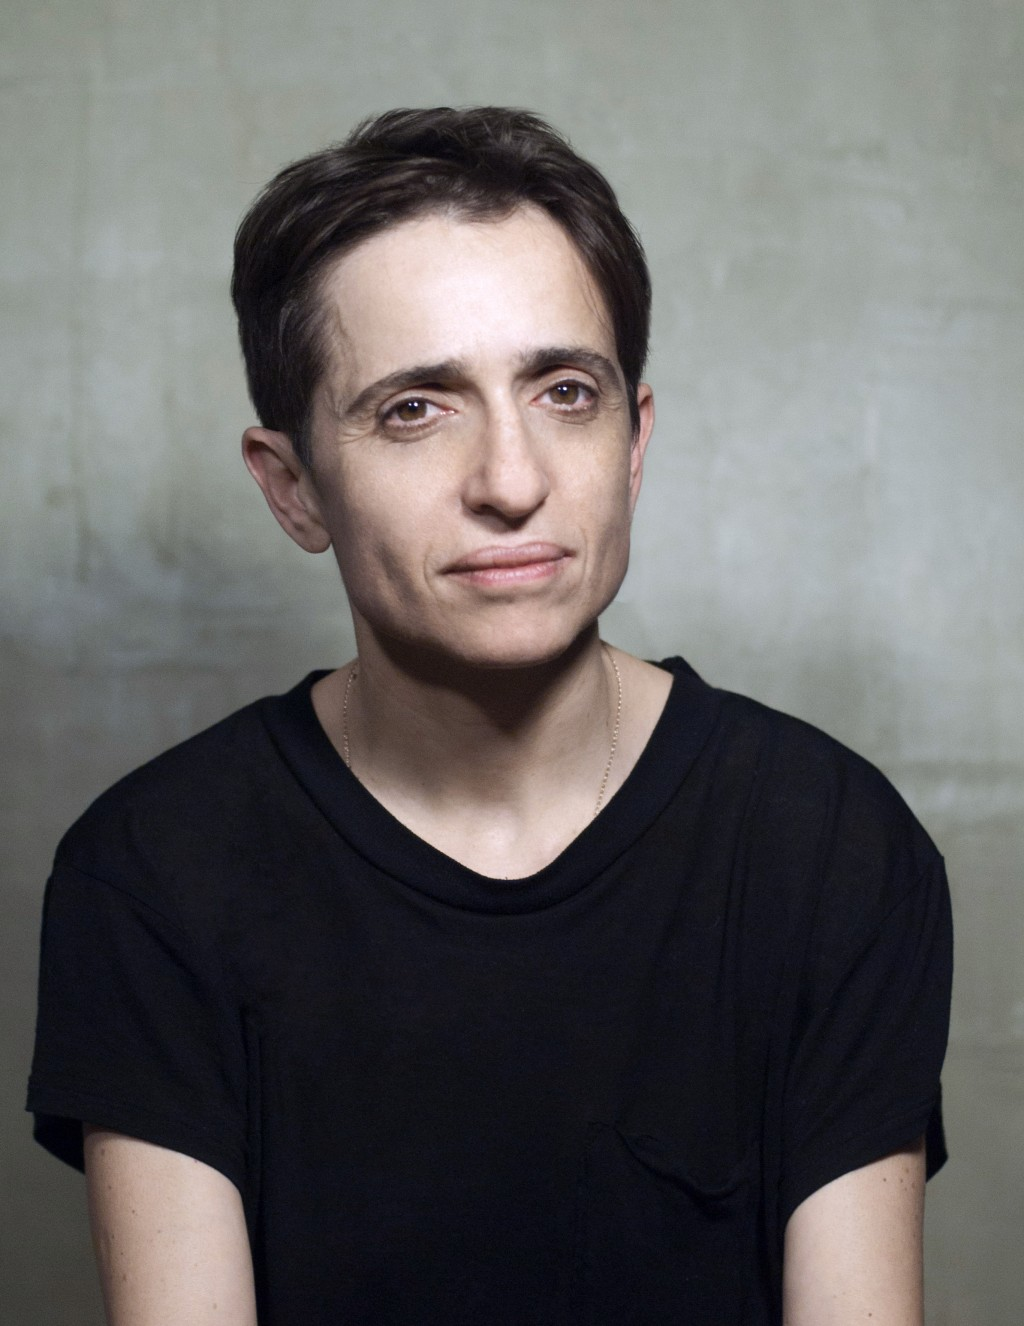 This Dec. 22, 2014 photo provided by Riverhead Publishers shows journalist and author Masha Gessen, who writes extensively about Russia. Gessen said i...